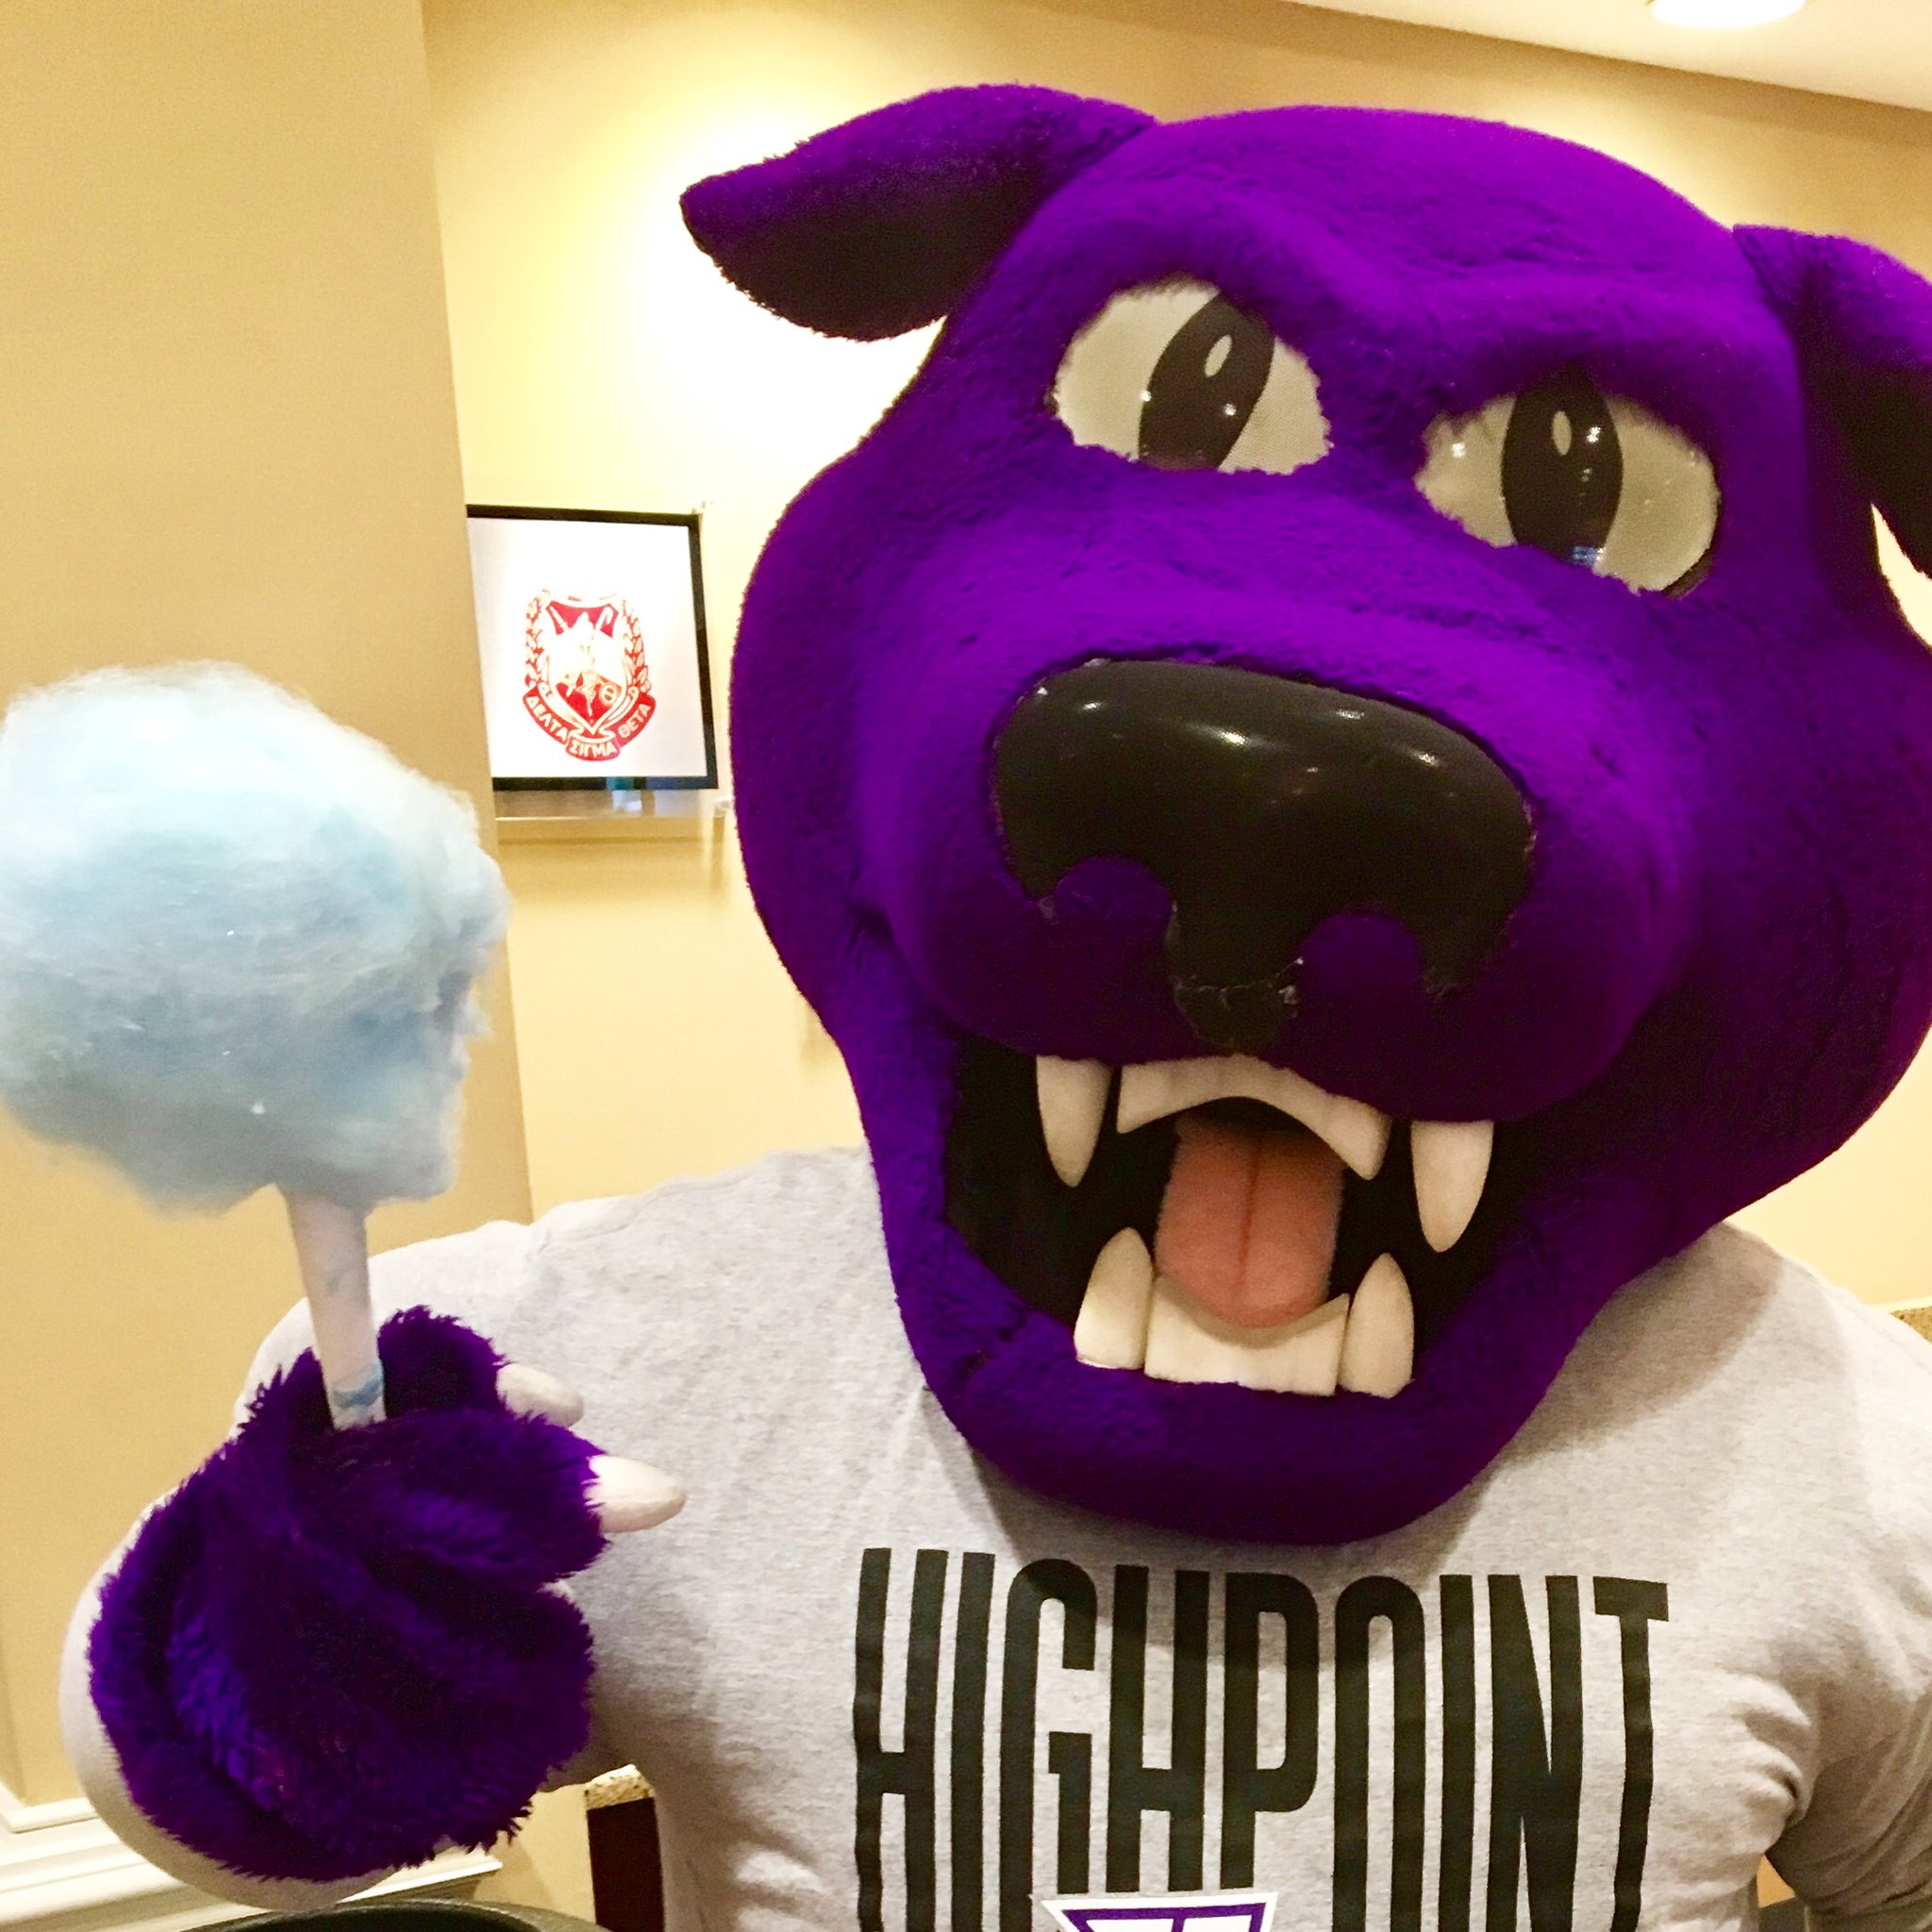 #HPUAlum, come to Webb Conference Center for wine tasting, food & cotton candy with Prowler! #HPUAlumniWeekend2016 https://t.co/UxwoVdy1OA